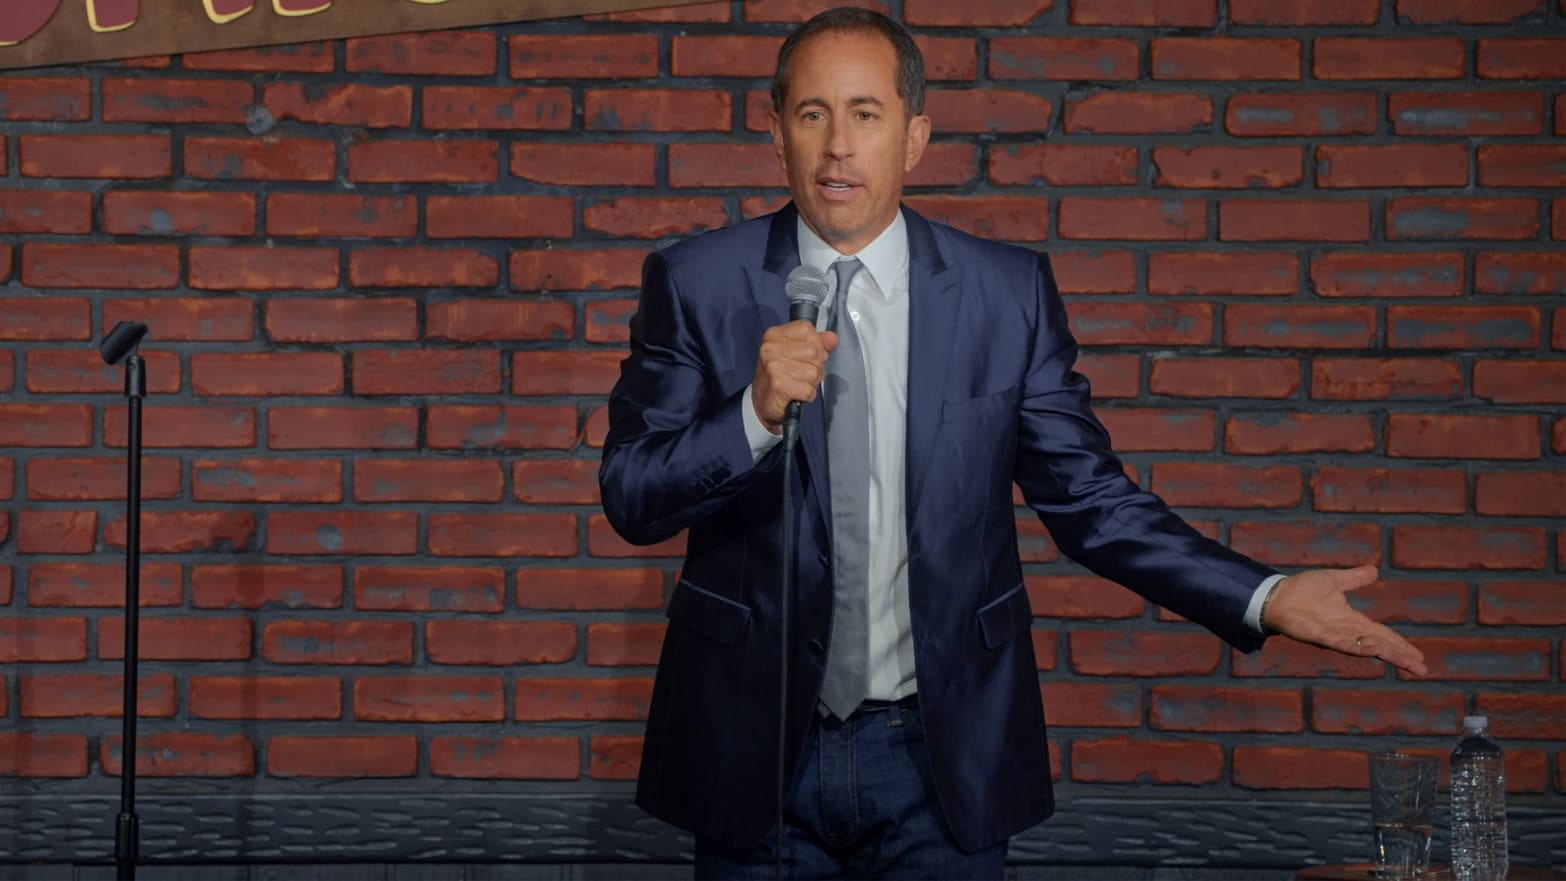 Jerry Seinfeld's Stand-Up Comedy Is Still About Nothing. But Should It Stand for Something?